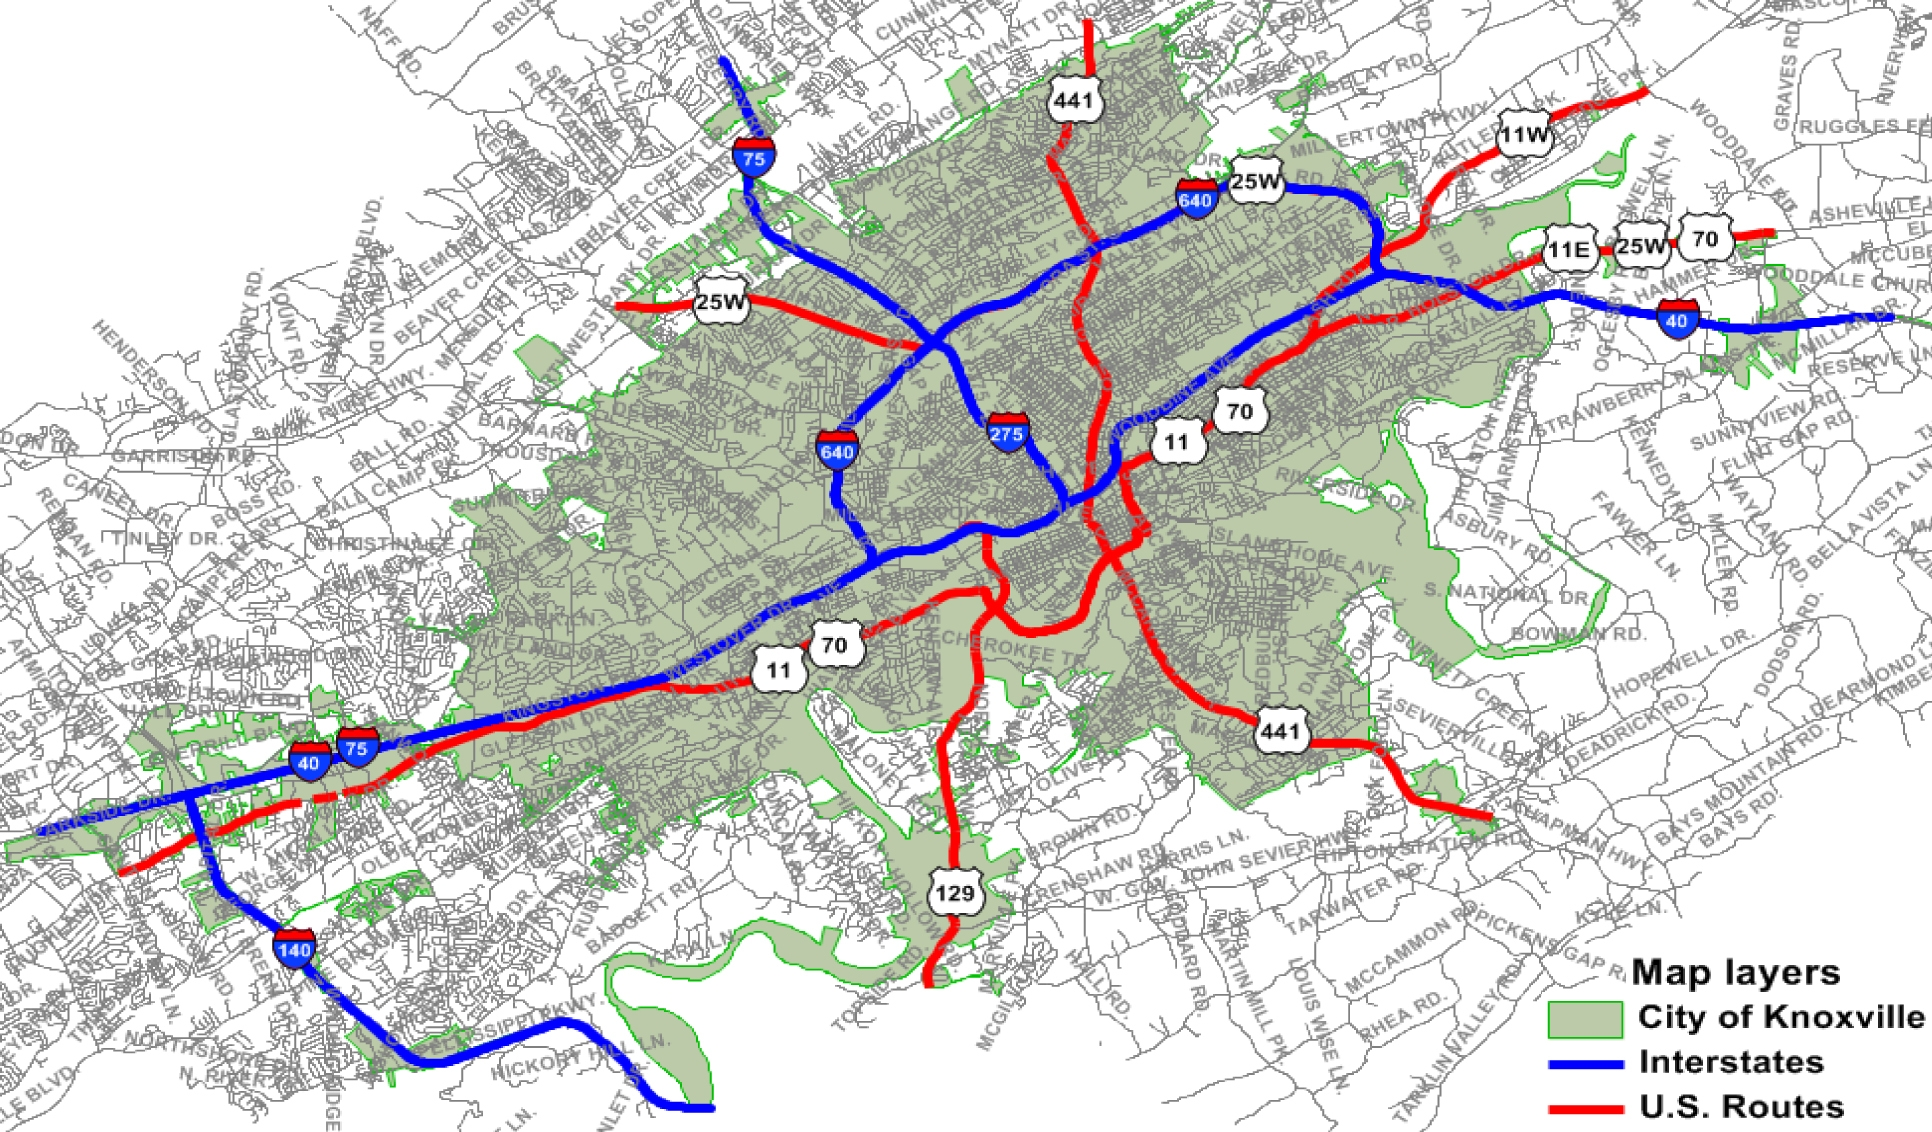 Interstate Highway System Knoxville TN